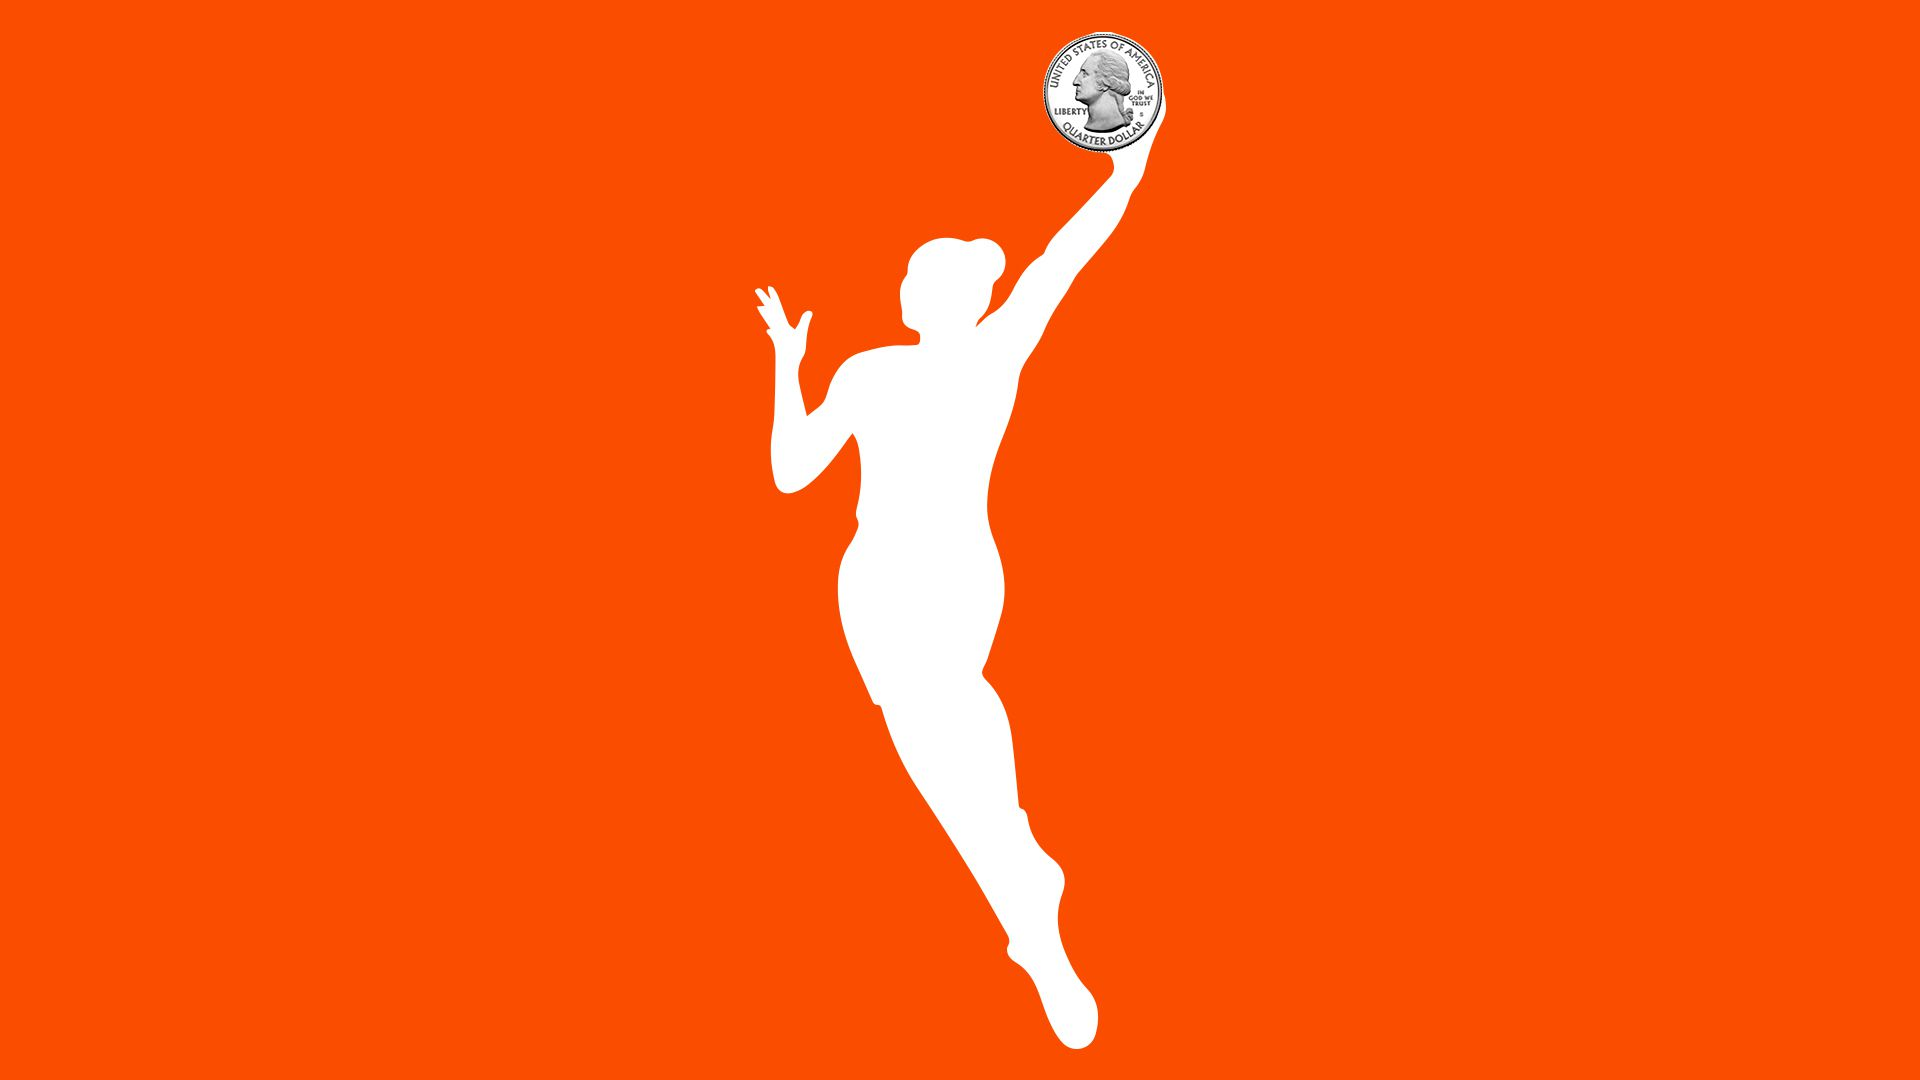 WNBA logo with ball replaced by money